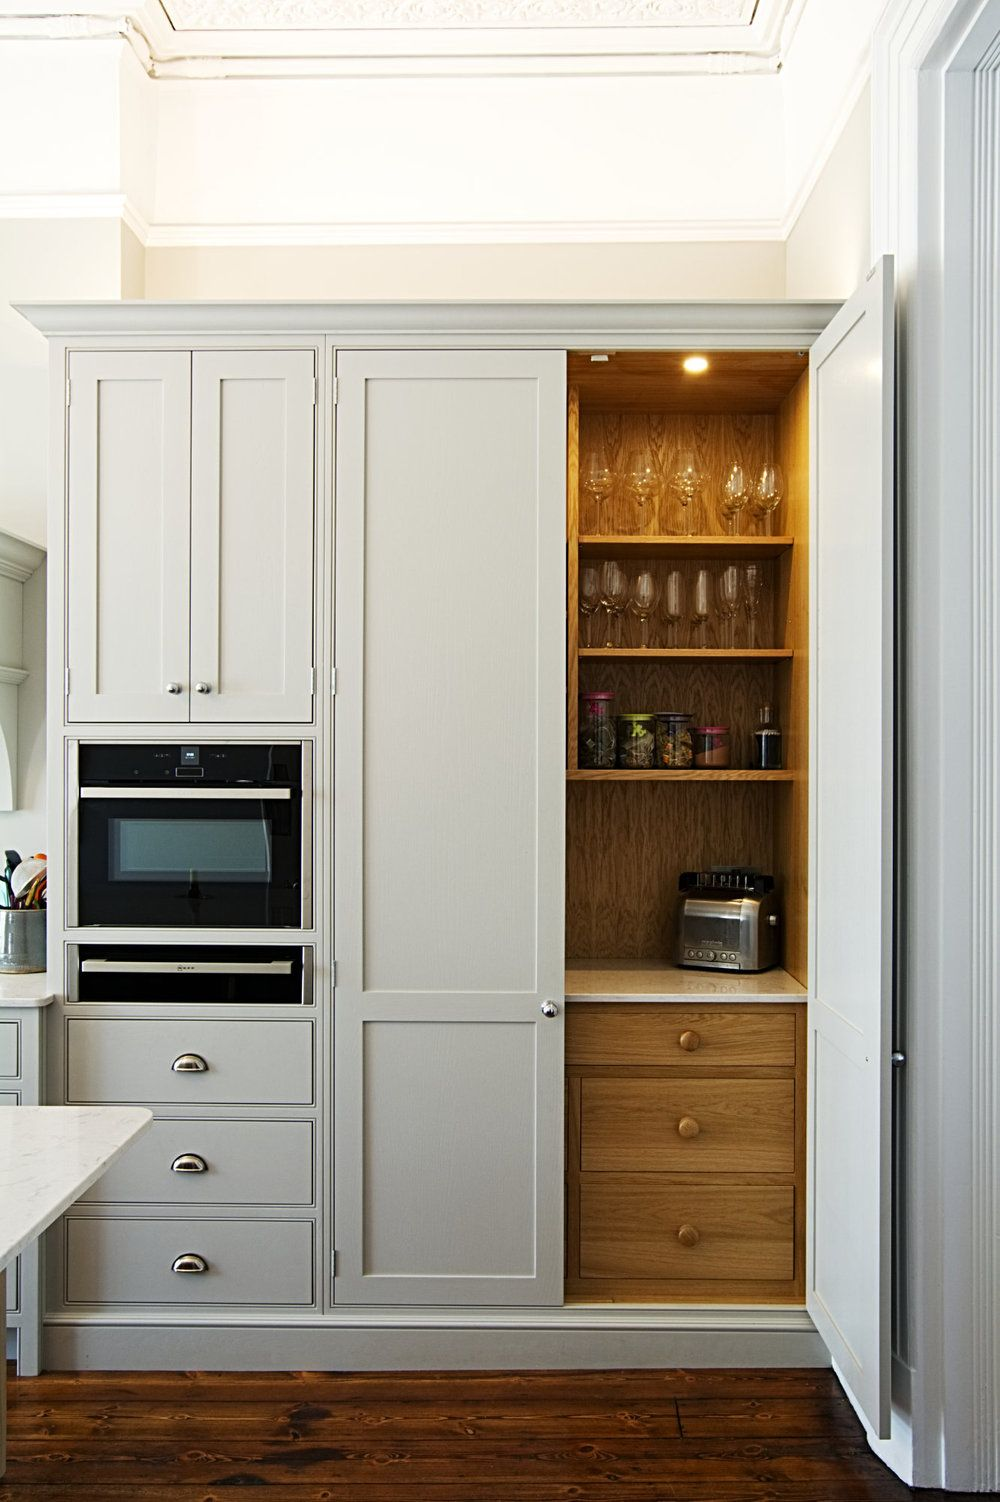 Image by Laura Alexander on Homes Kitchen trends